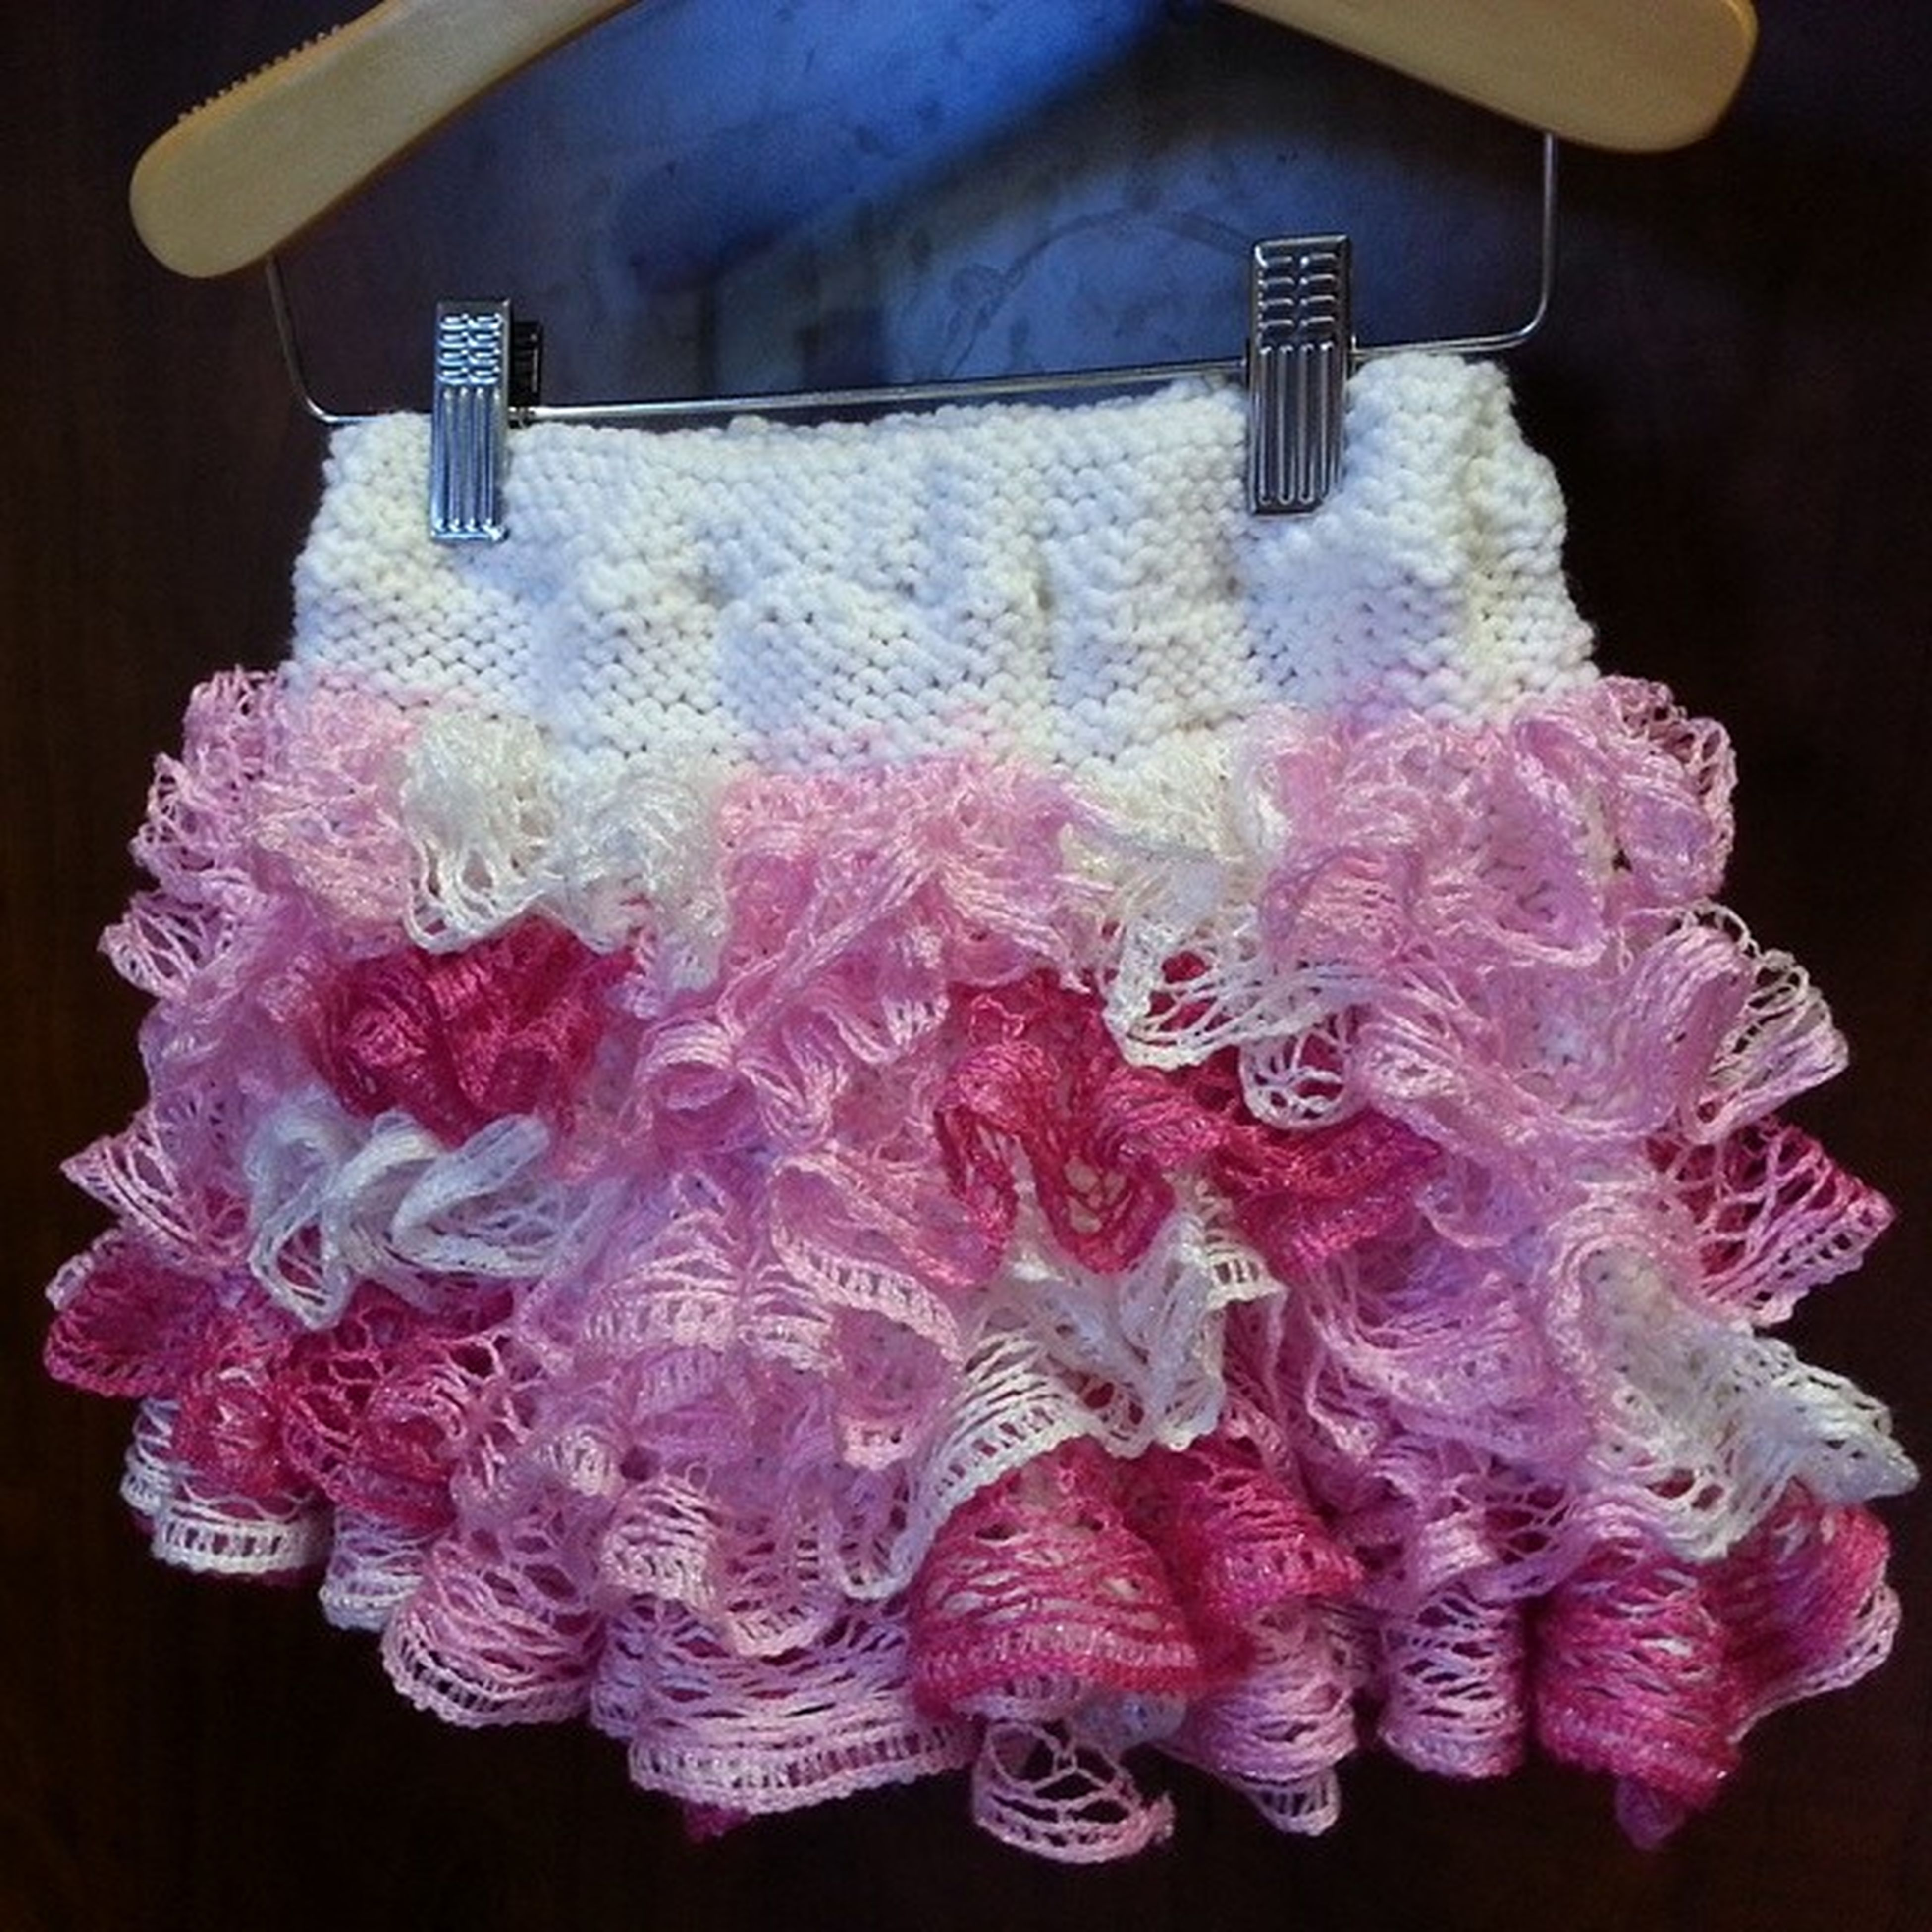 Here is one of our newest skirts. These are hand knit right here in our shop! LilyKate Newproductalert Ruffles Knit sashay